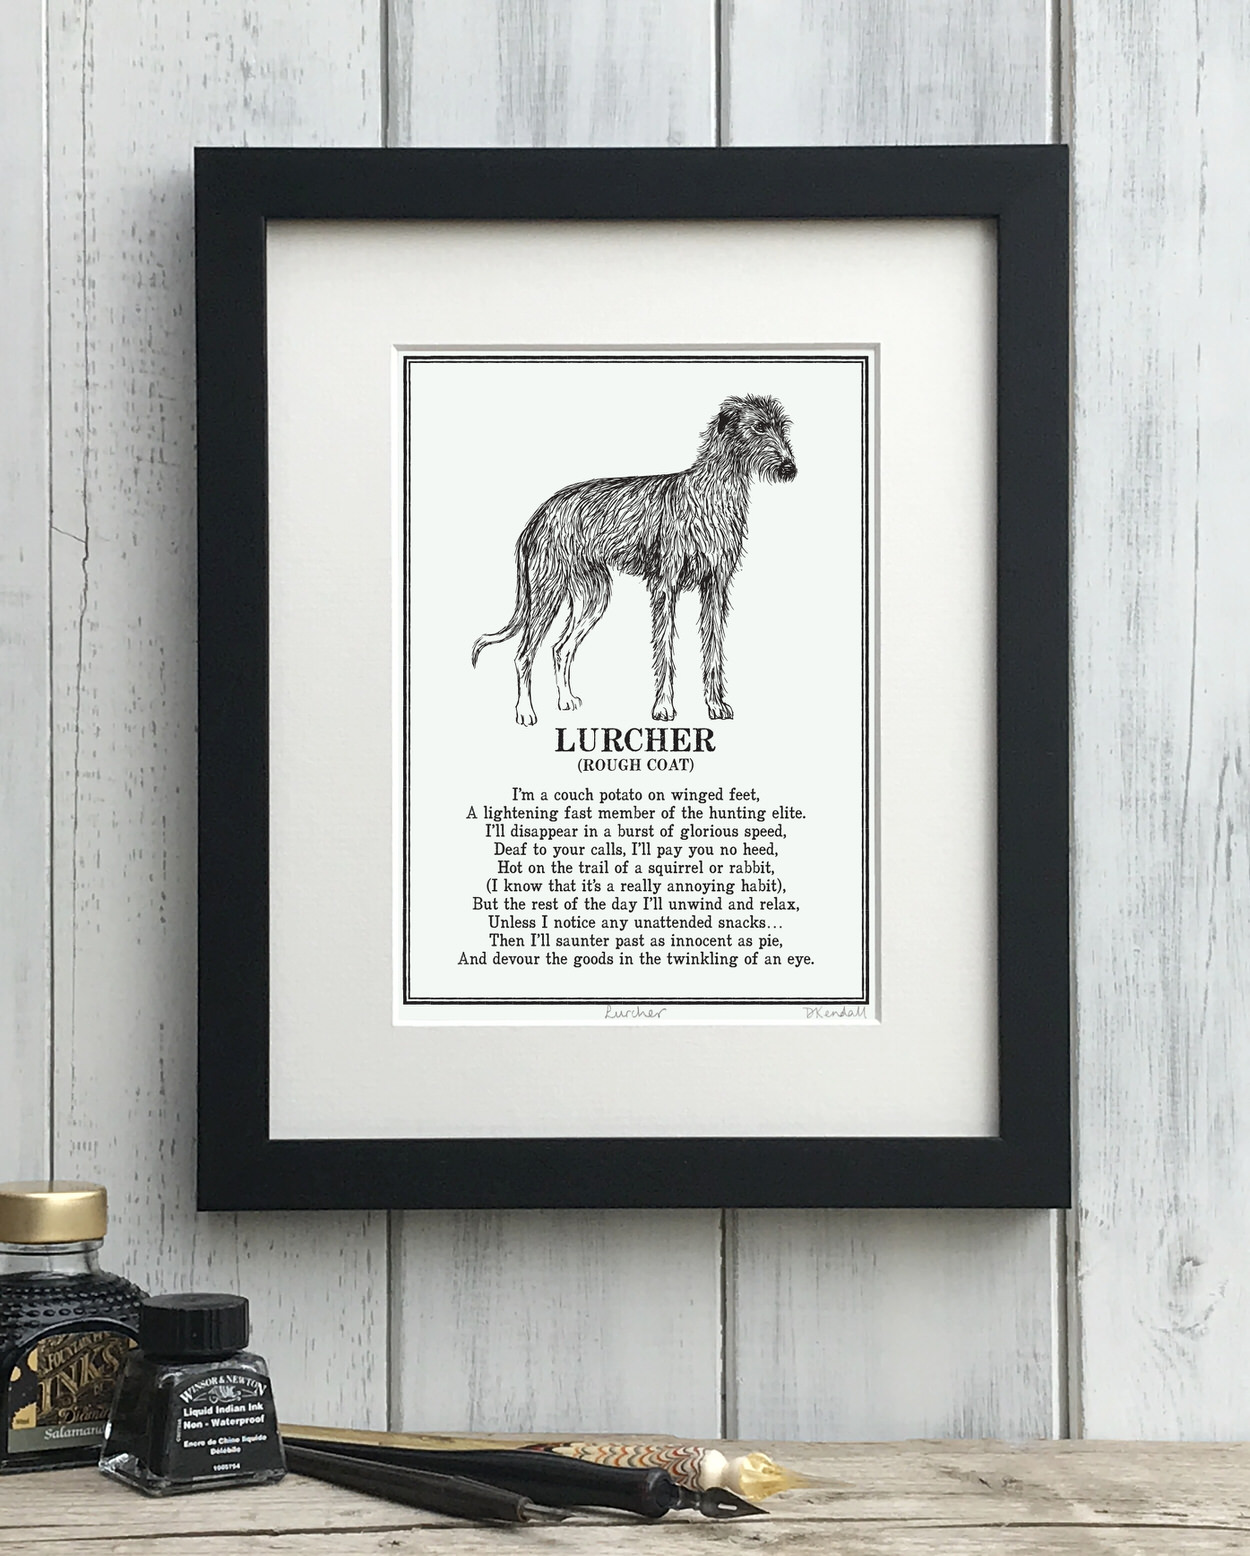 Rough coated Lurcher Print - The Enlightened Hound